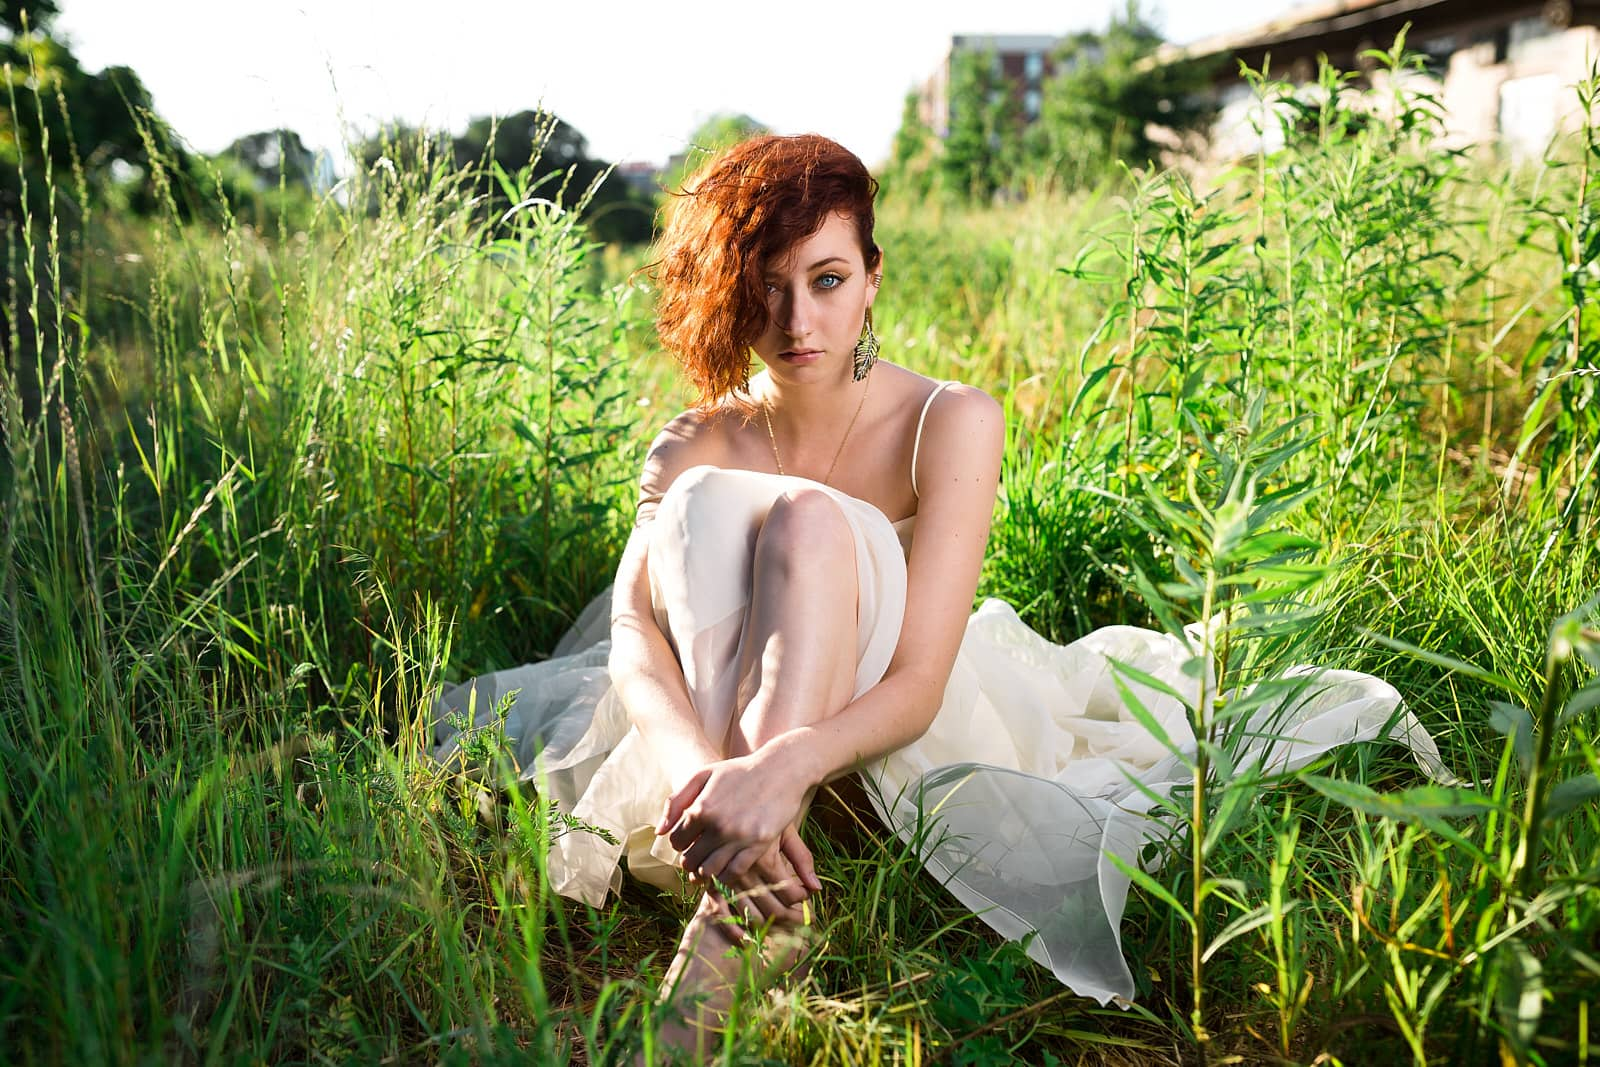 red head girl in white dress sits in greed field for atlanta portrait photography